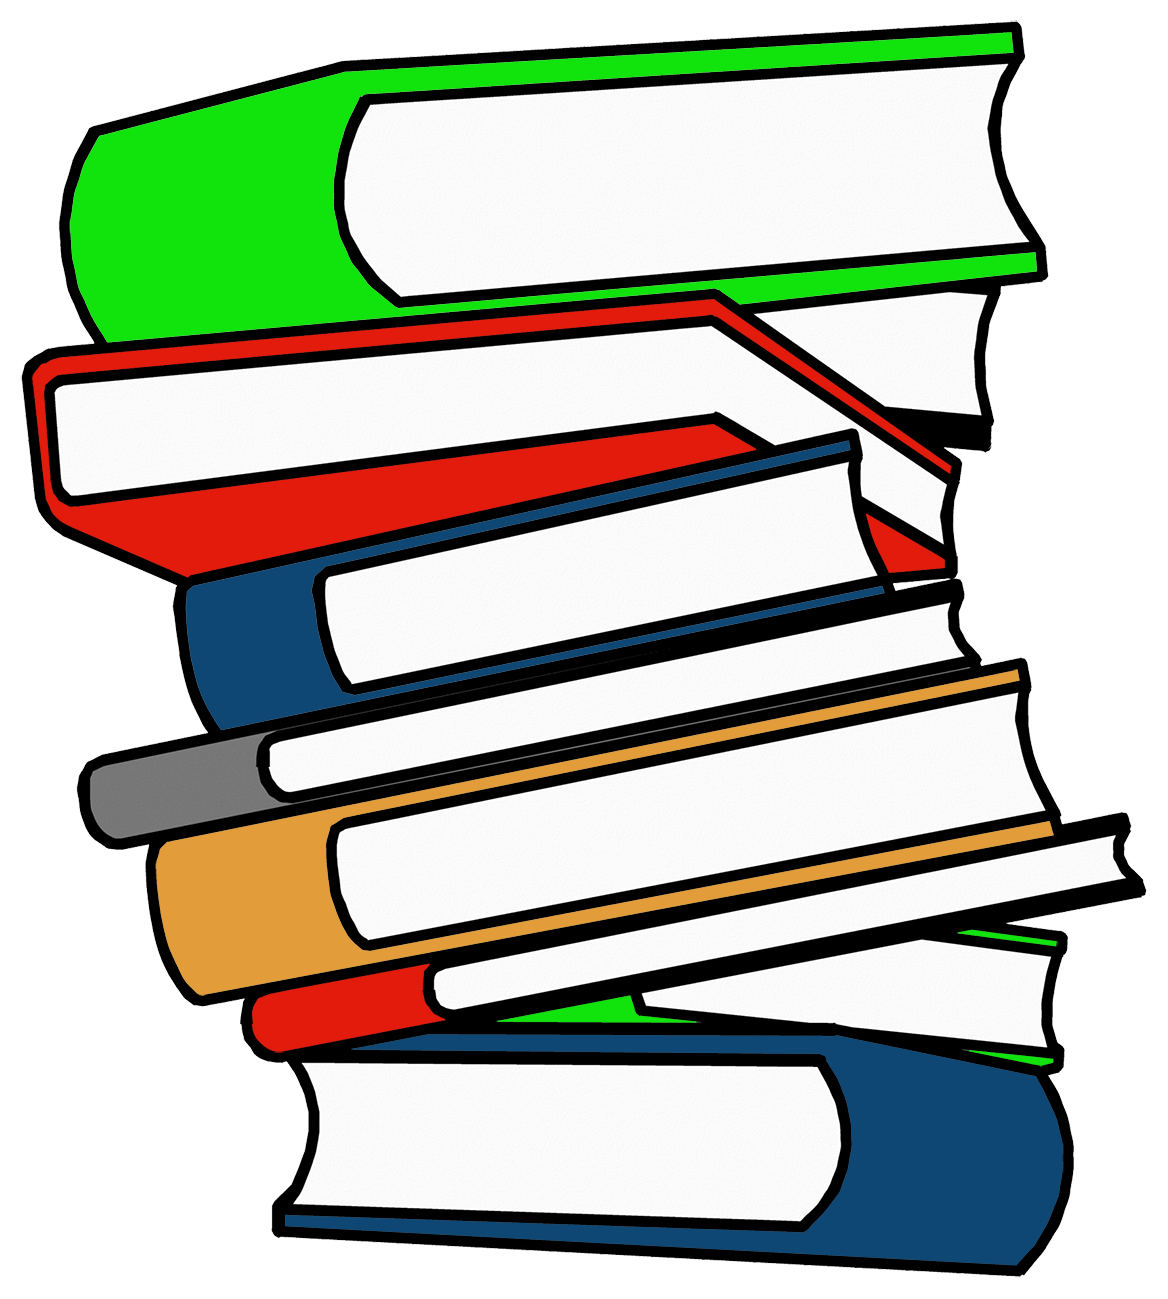 stack of books in different colors